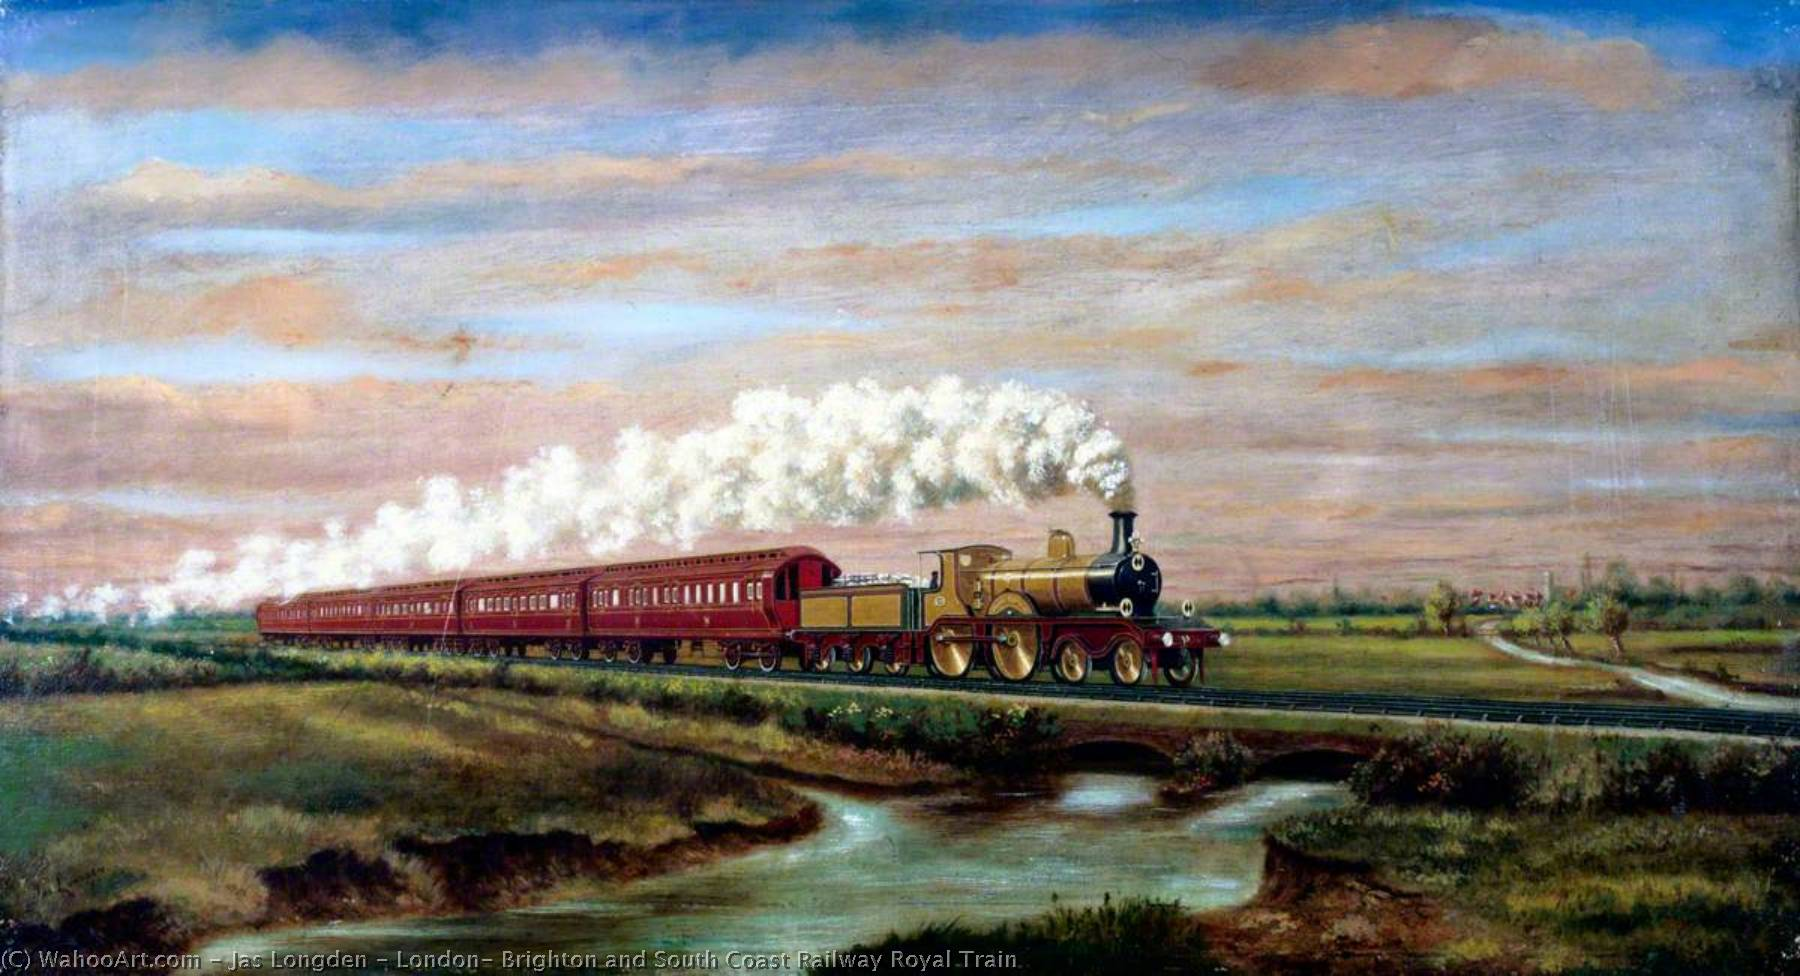 famous painting London, Brighton and South Coast Railway Royal Train of Jas Longden